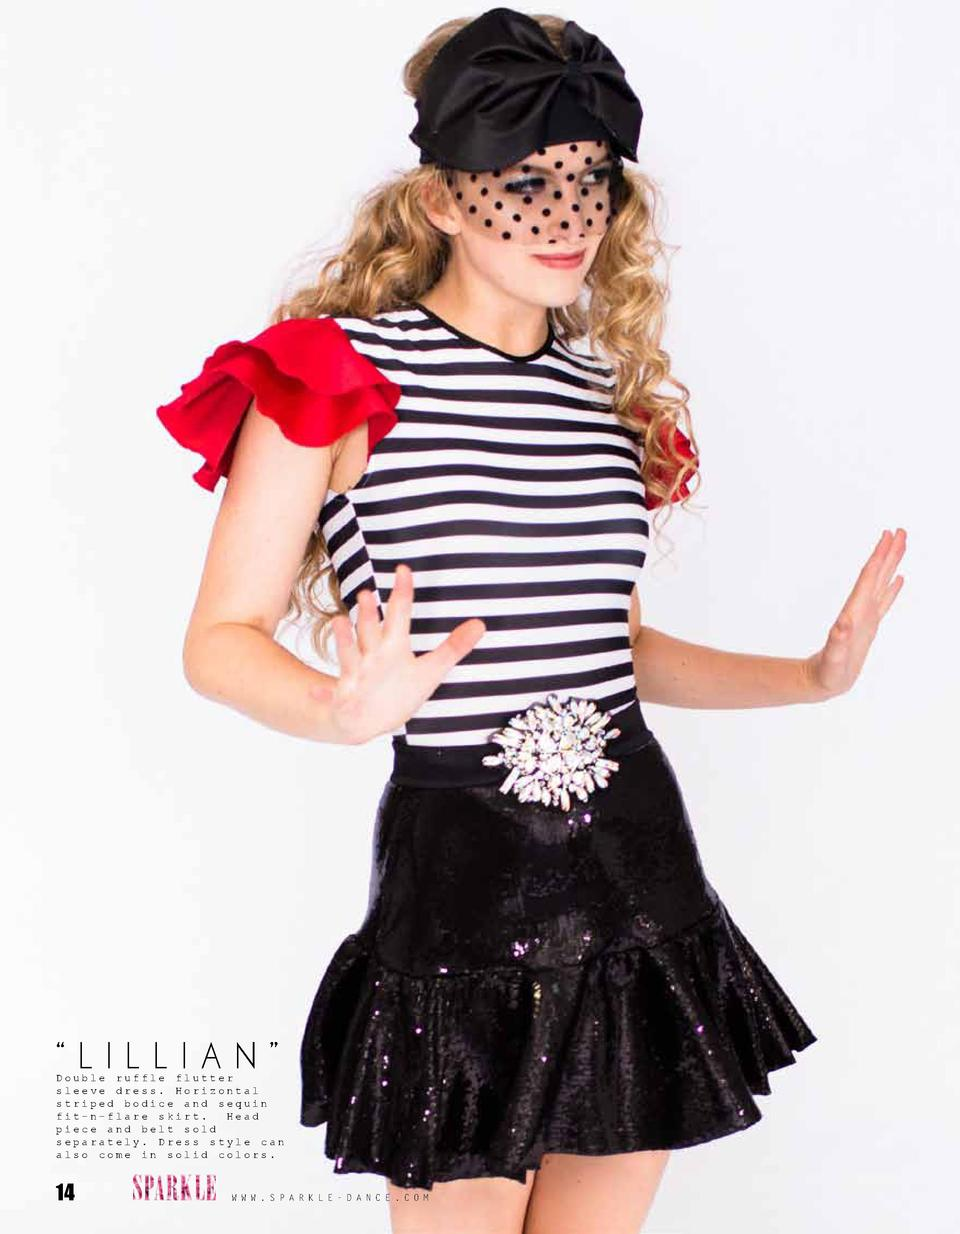 LILLIAN     Double ruffle flutter sleeve dress. Horizontal striped bodice and sequin fit-n-flare skirt. Head piece and ...